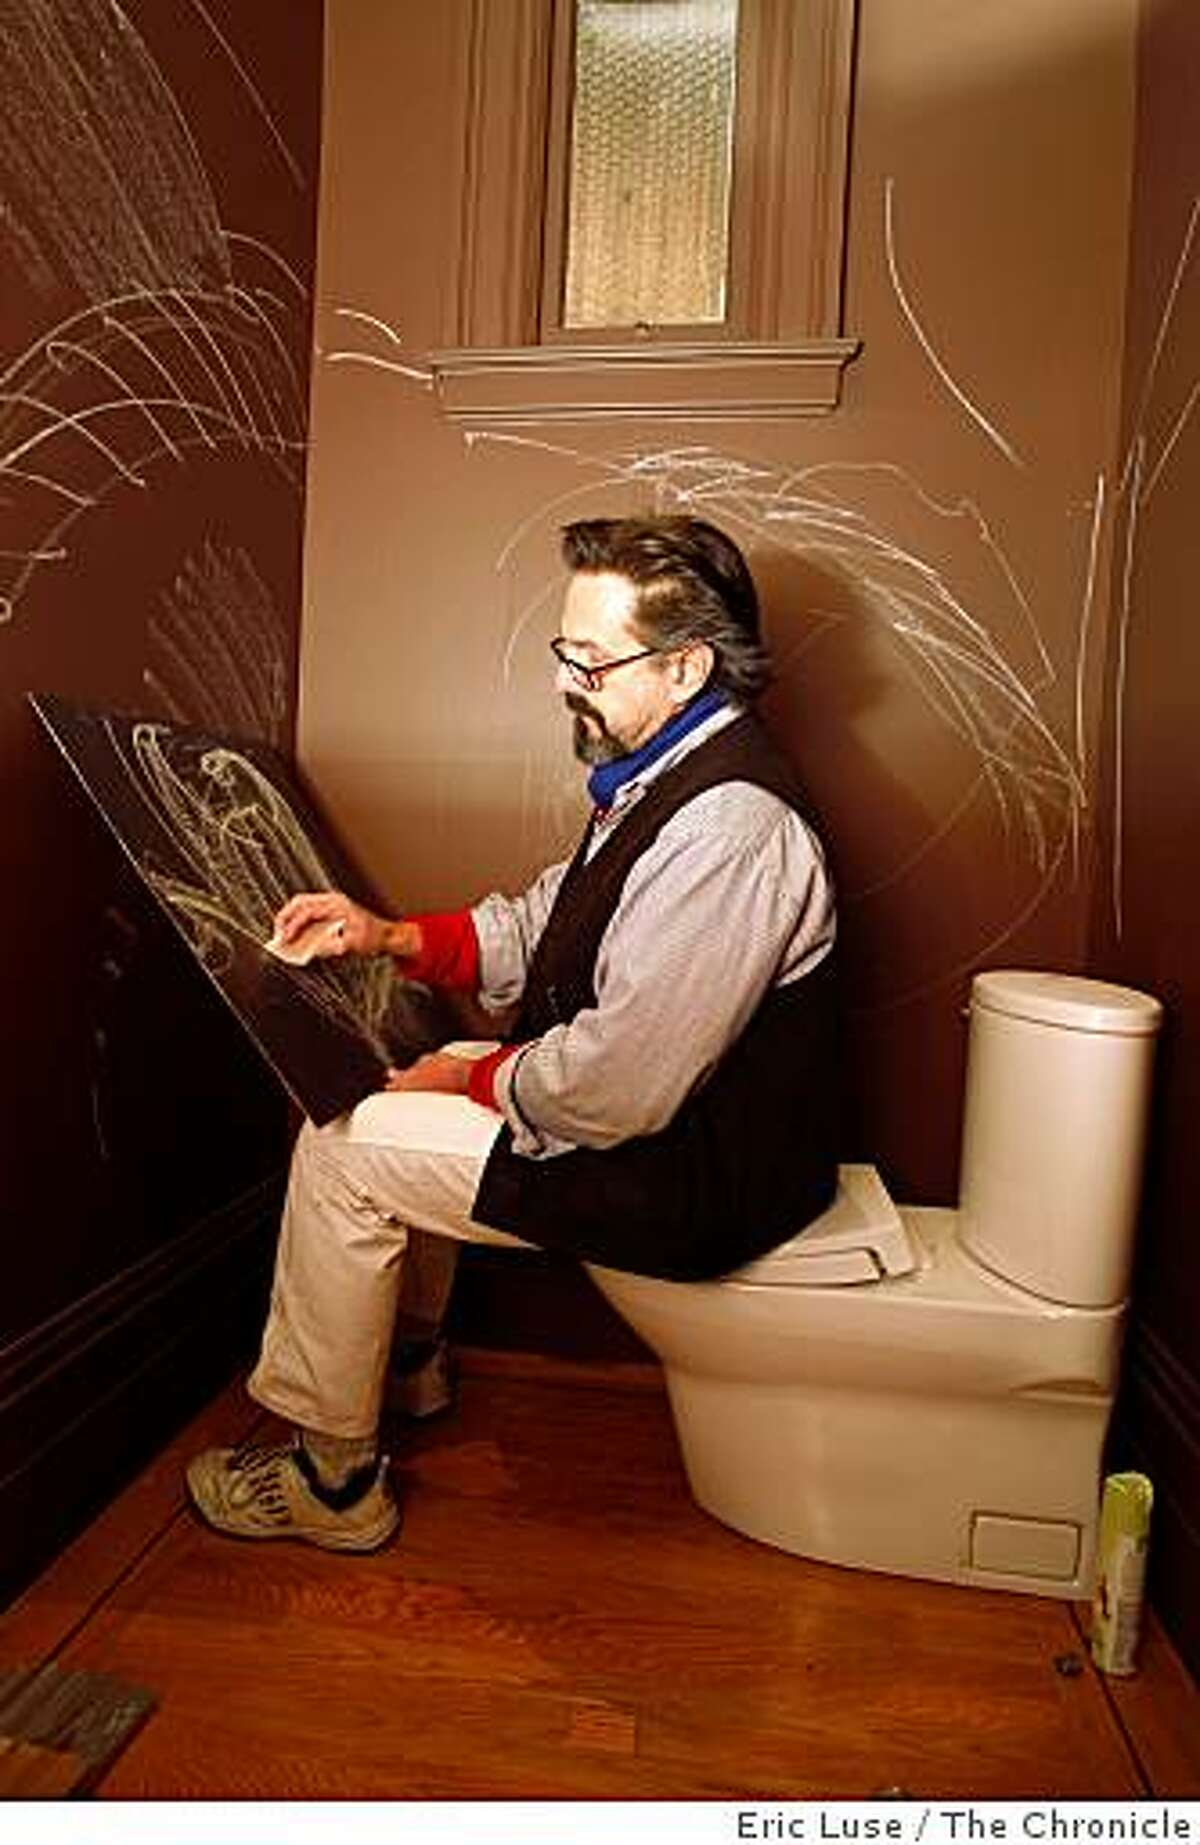 Master Painter Ted Somogyi forgot his chock but used a piece of sheetrock to sketch out an idea of what to do with Anastasia Faiella's tiny bathroom. This is going through a make over at the 2009 Decorator Showcase photographed in San Francisco on Wednesday, March 11, 2009.